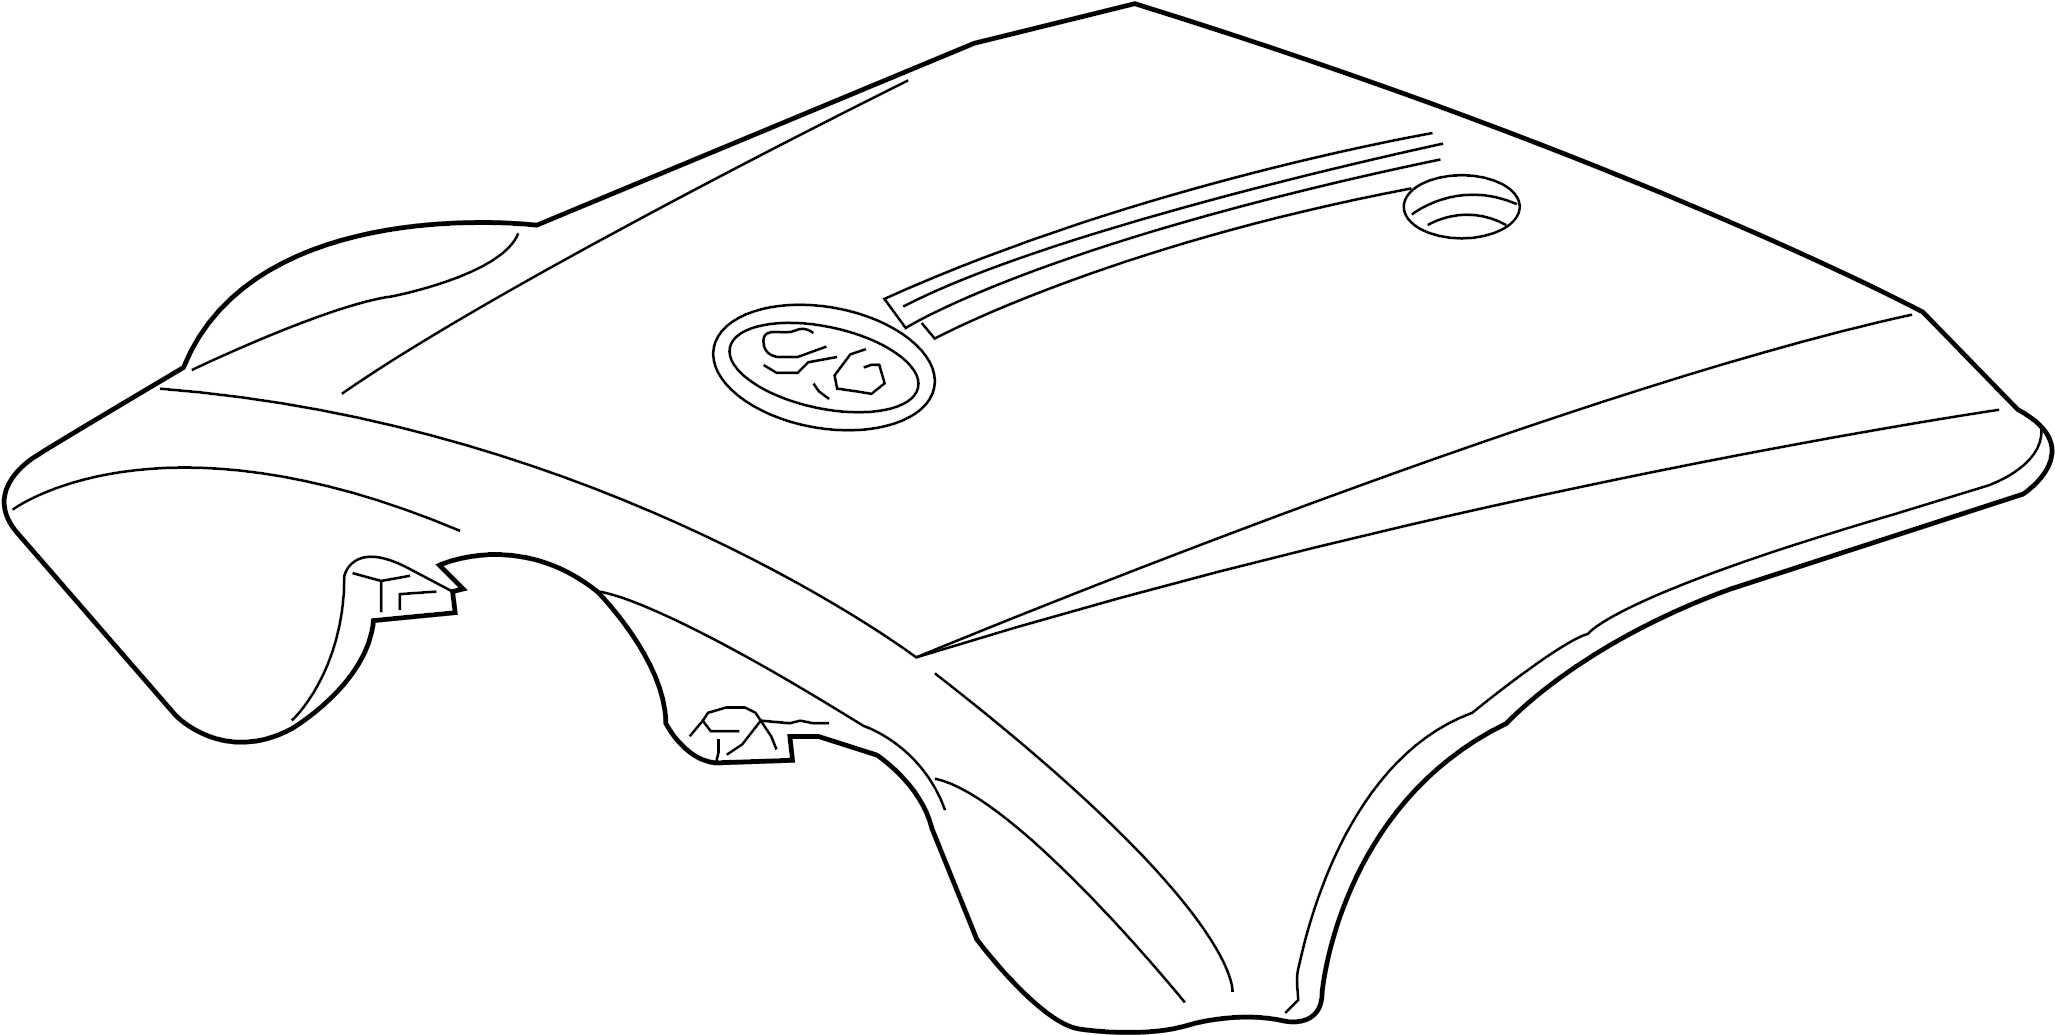 Mercury Grand Marquis Engine Cover. From 1/29/99. To 1/29